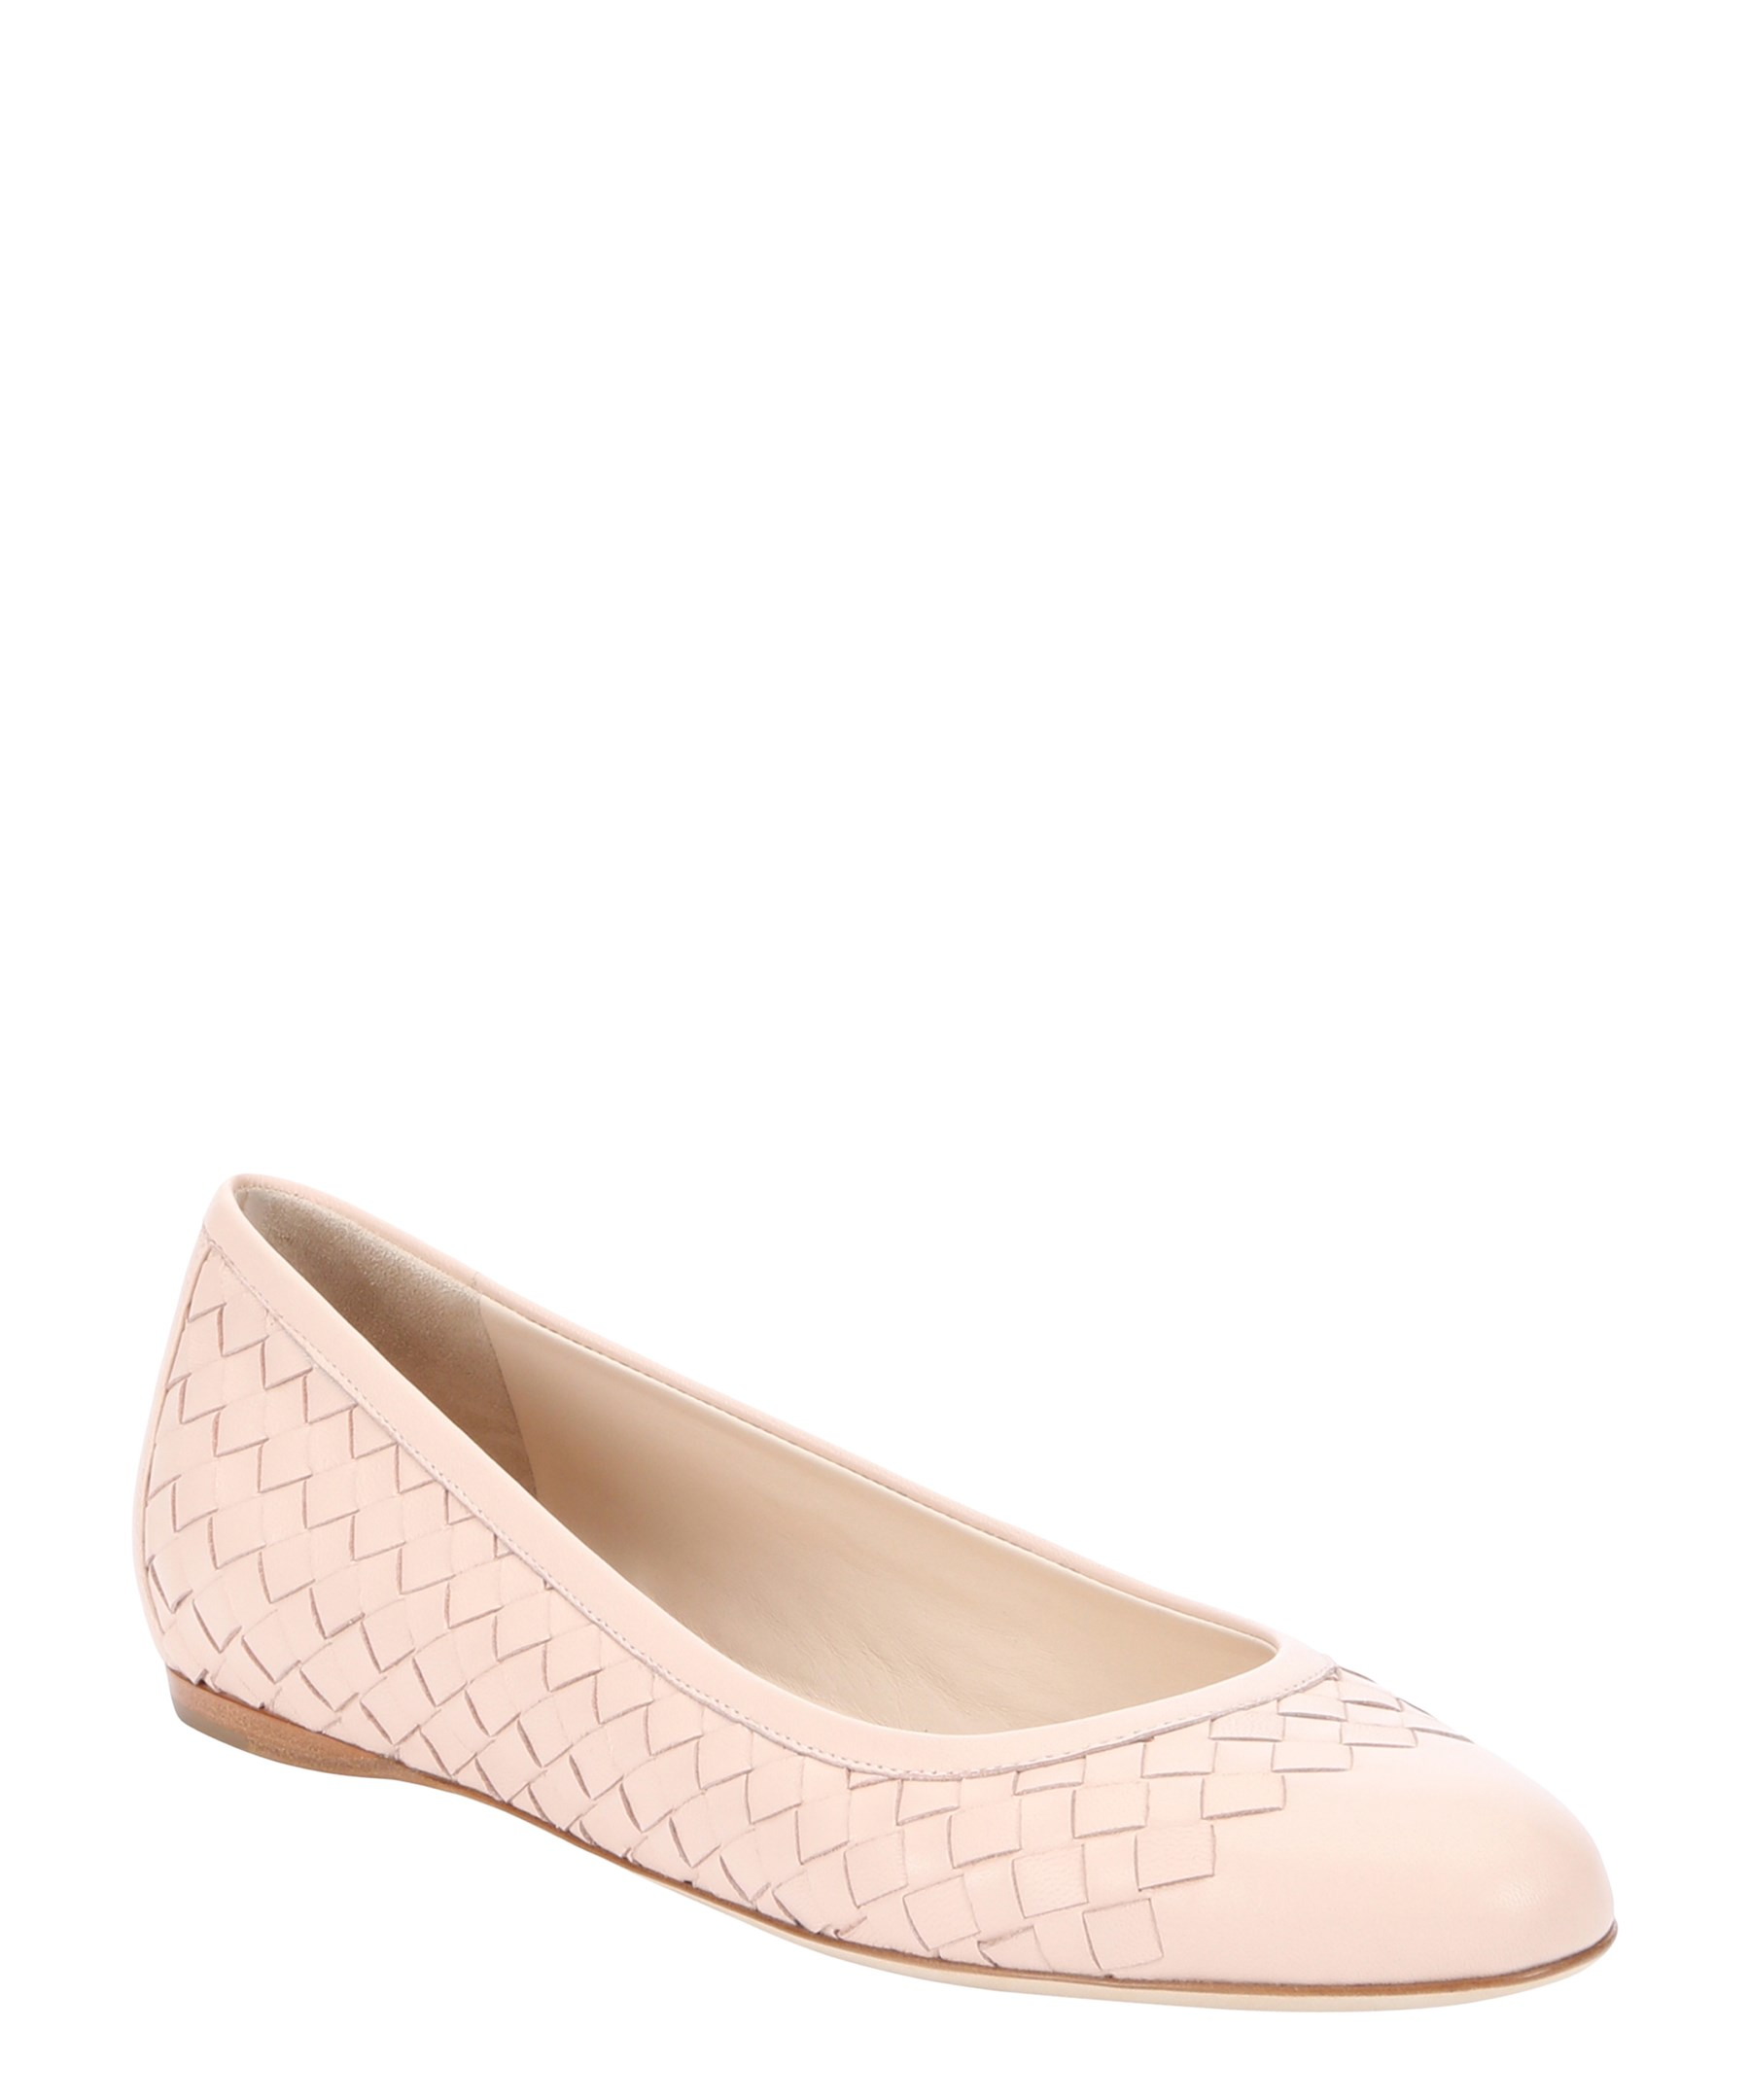 Free shipping and returns on Women's Pink Flats at hereaupy06.gq